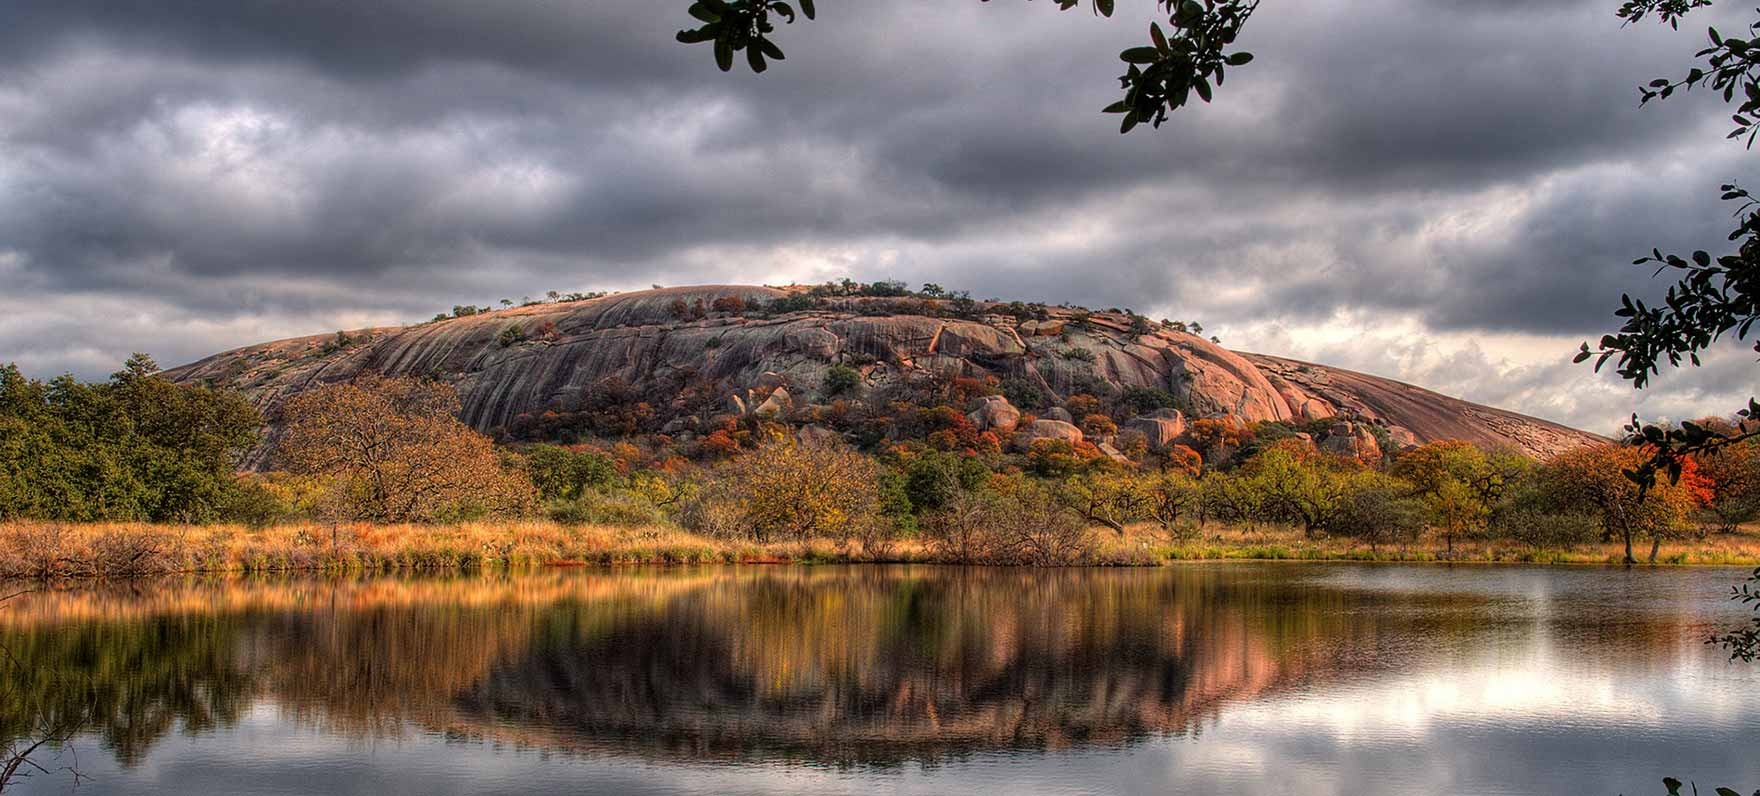 Enchanted Rock Texas Hidden Gem